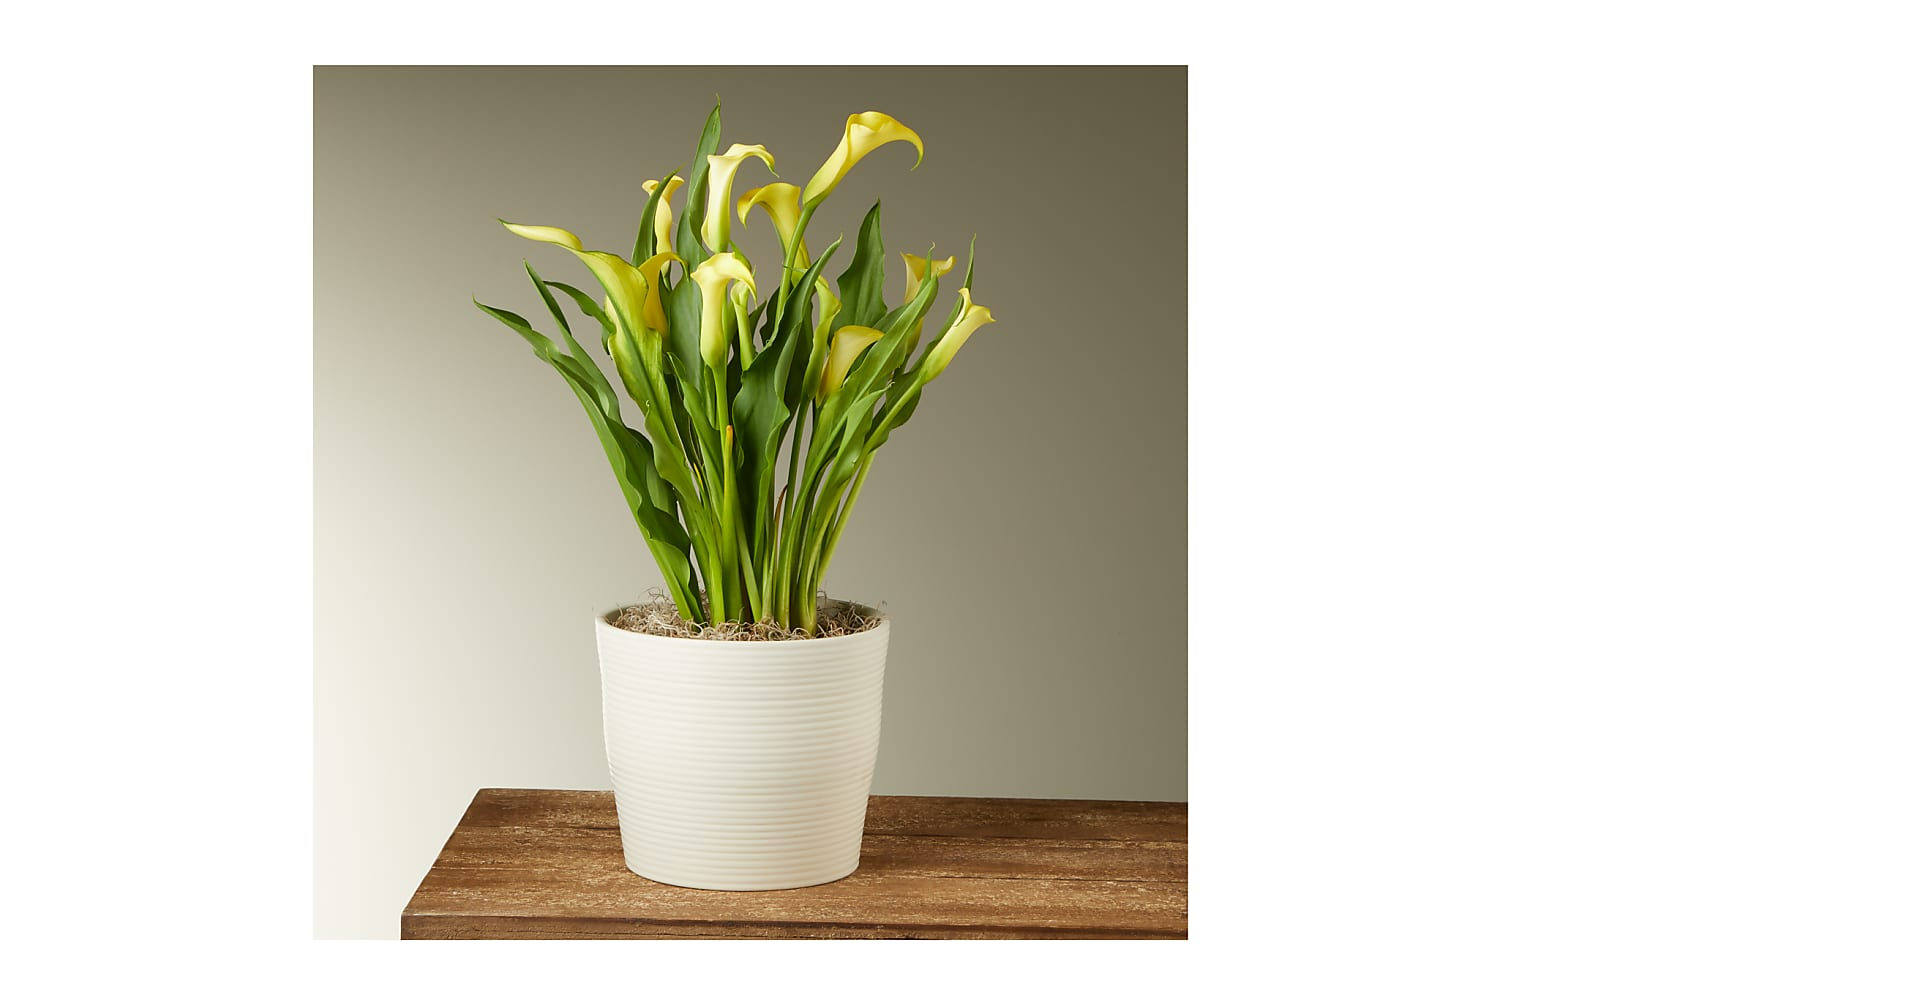 Yellow Calla Lily Plant - Image 1 Of 2